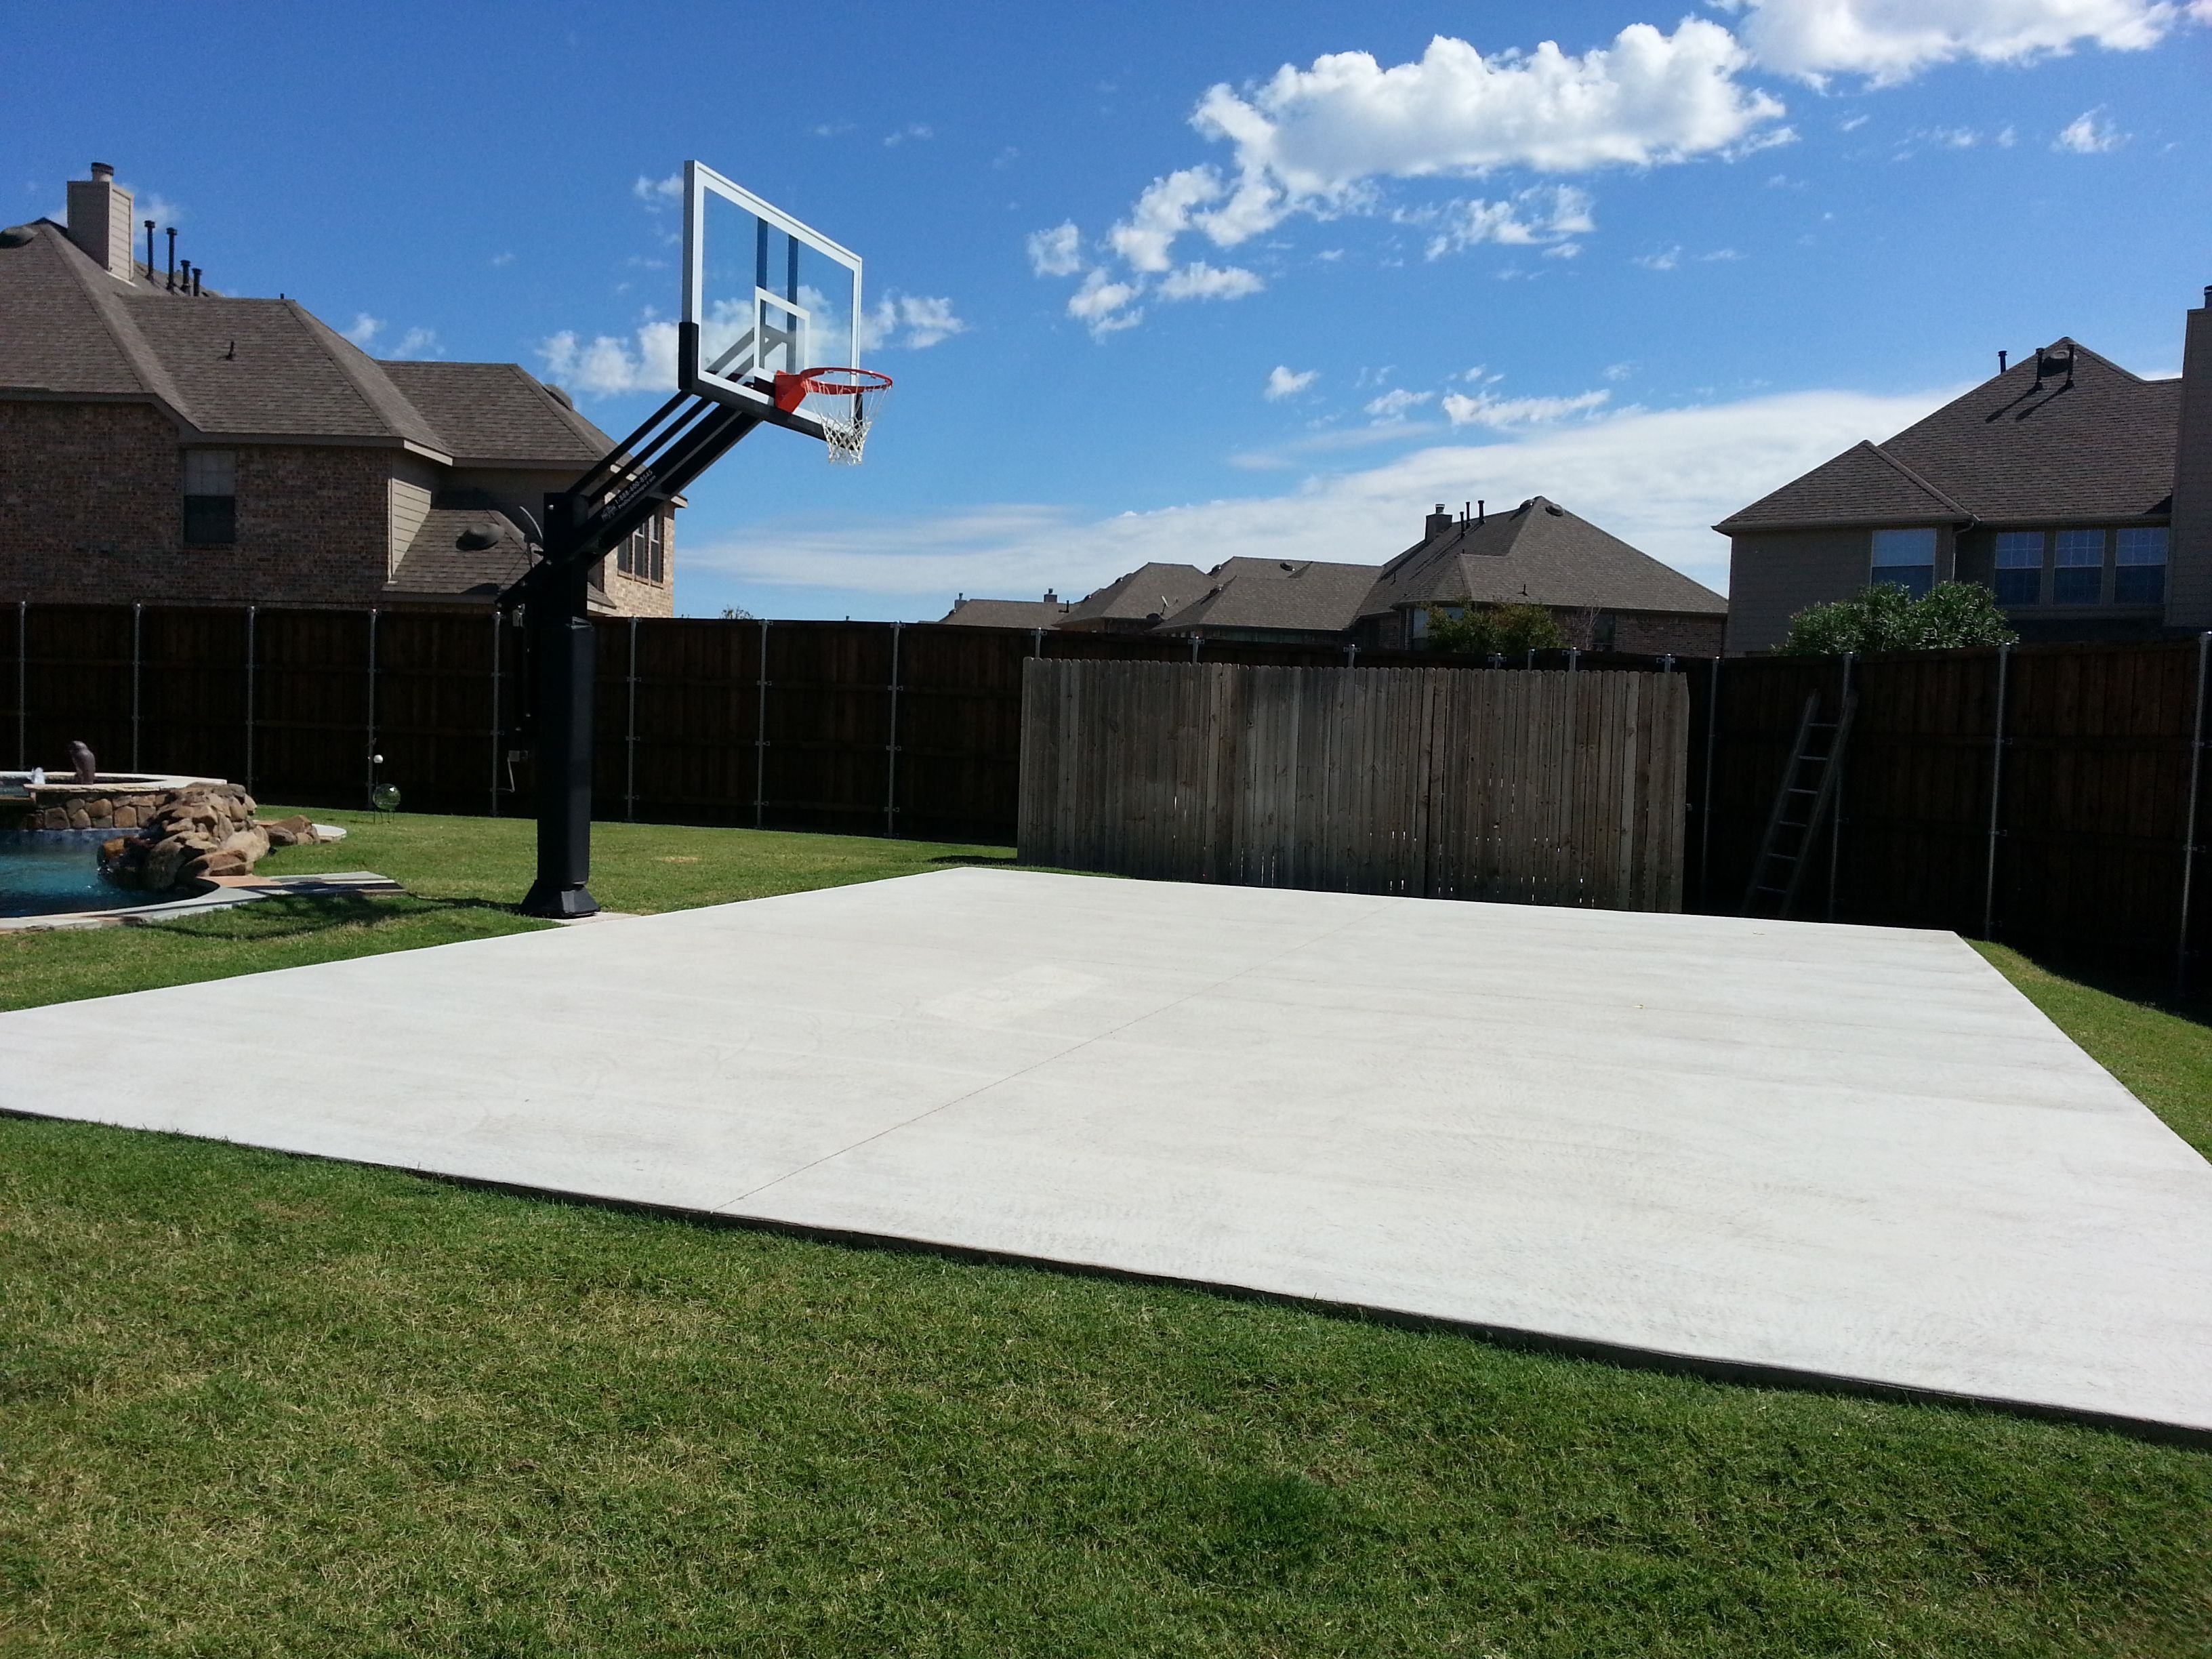 Backyard Concrete Slab Ideas concrete patio design ideas patios home design ideas wde9wowjgn There Is Marks Concrete Slab Court In His Backyard Next To His Pro Dunk Gold Basketball